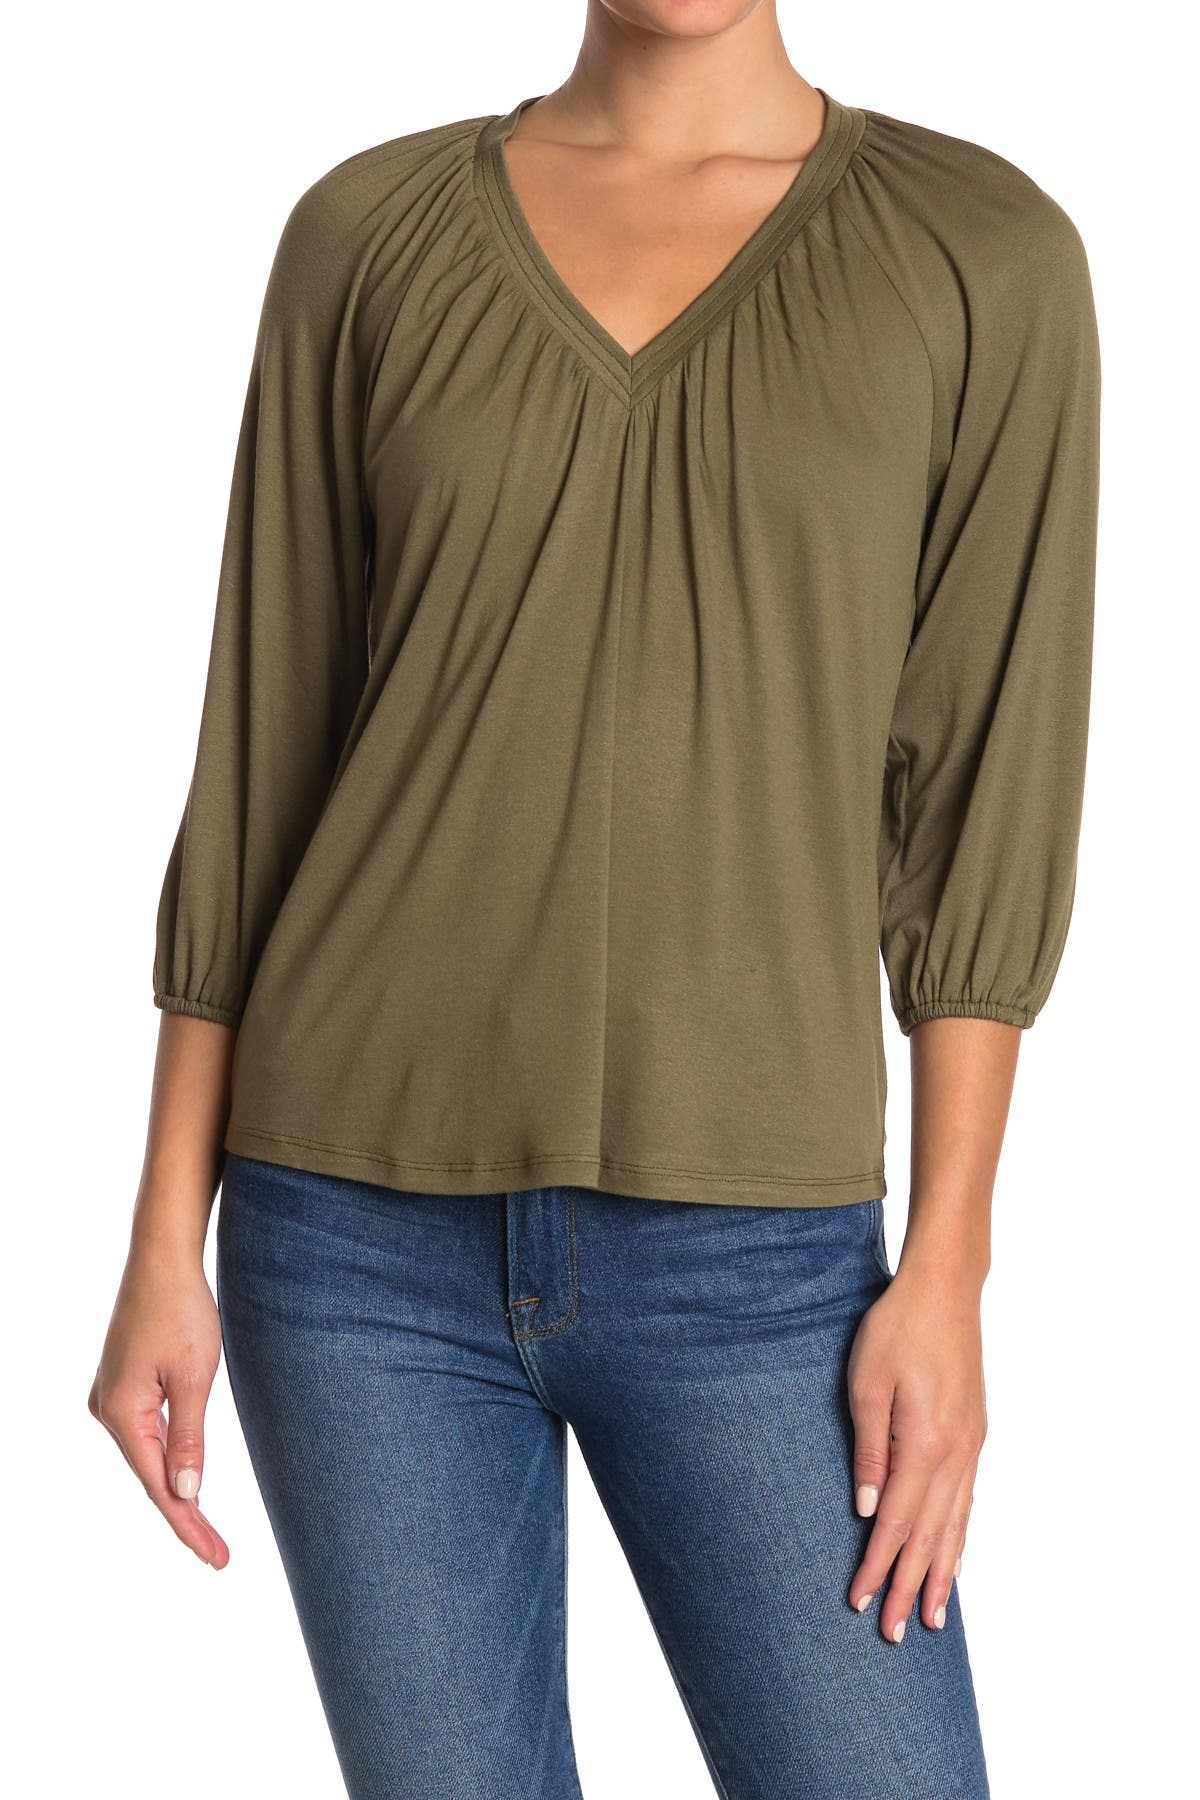 Image of Bobeau Puffed Sleeve V-Neck Top